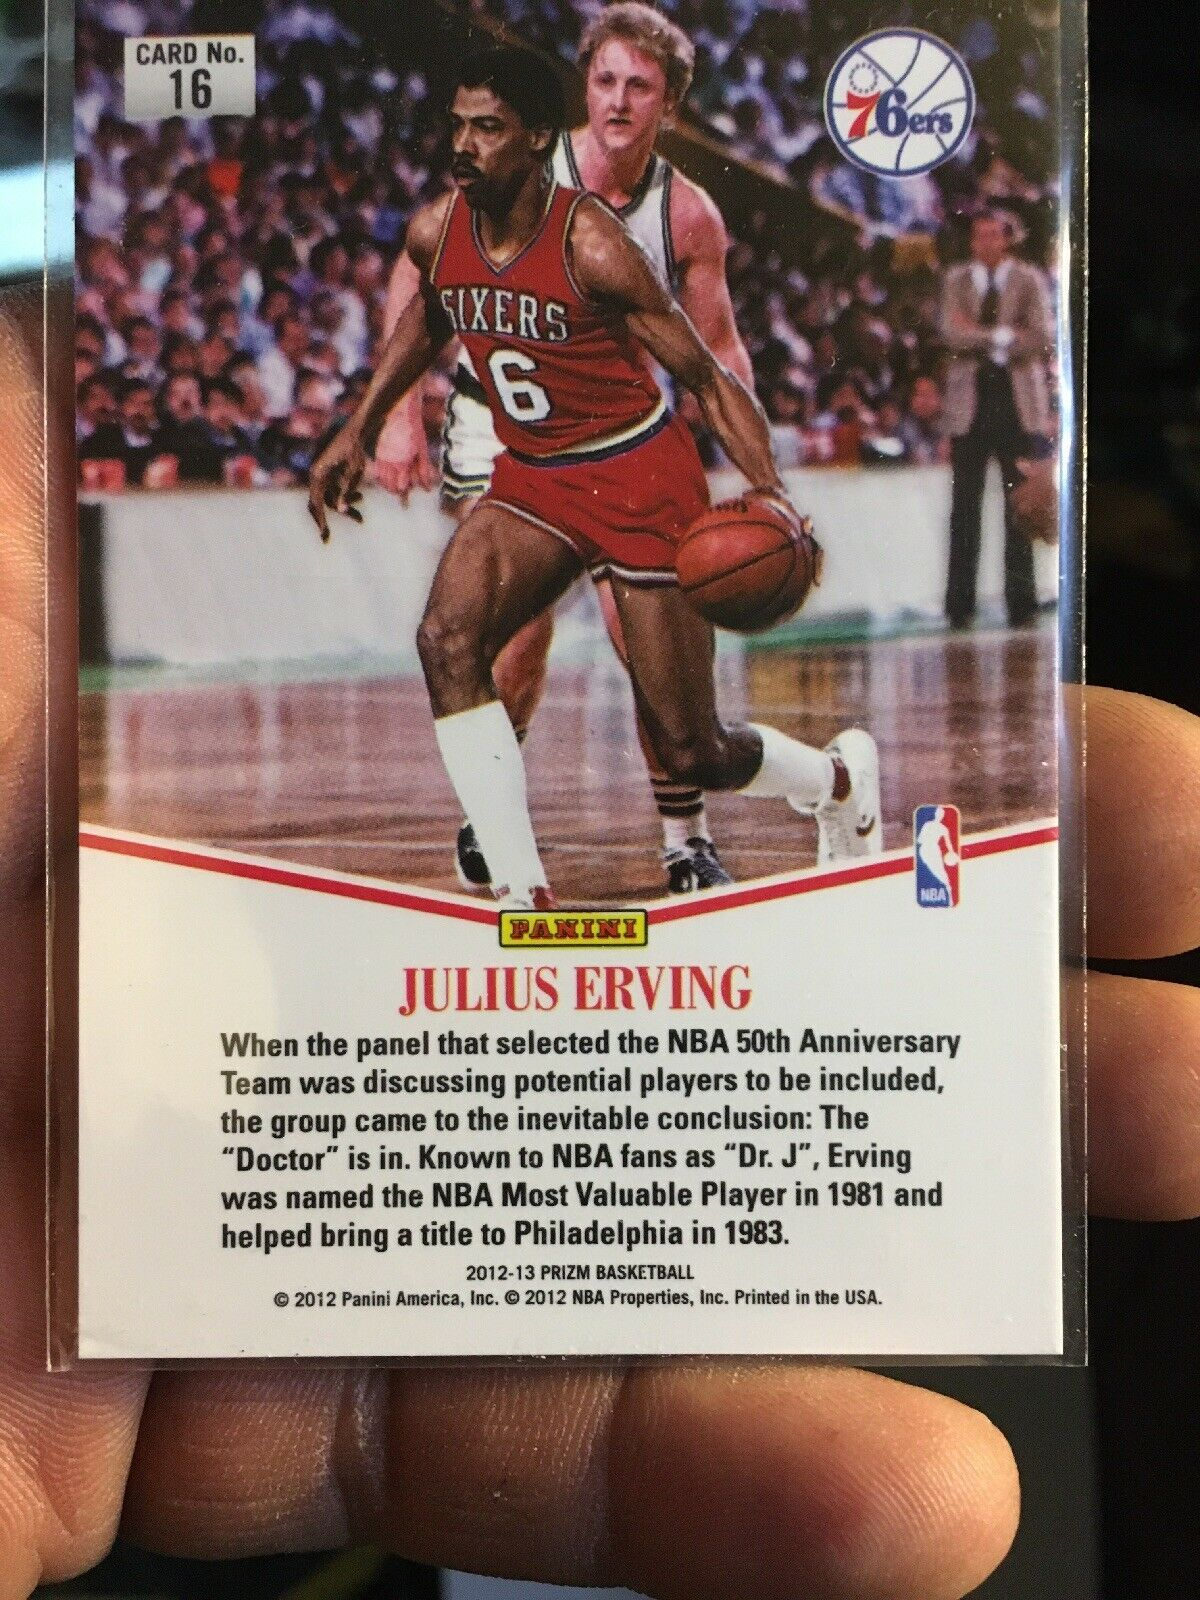 2012-13 Panini  Julius Erving #16 silver Basketball Card image 2